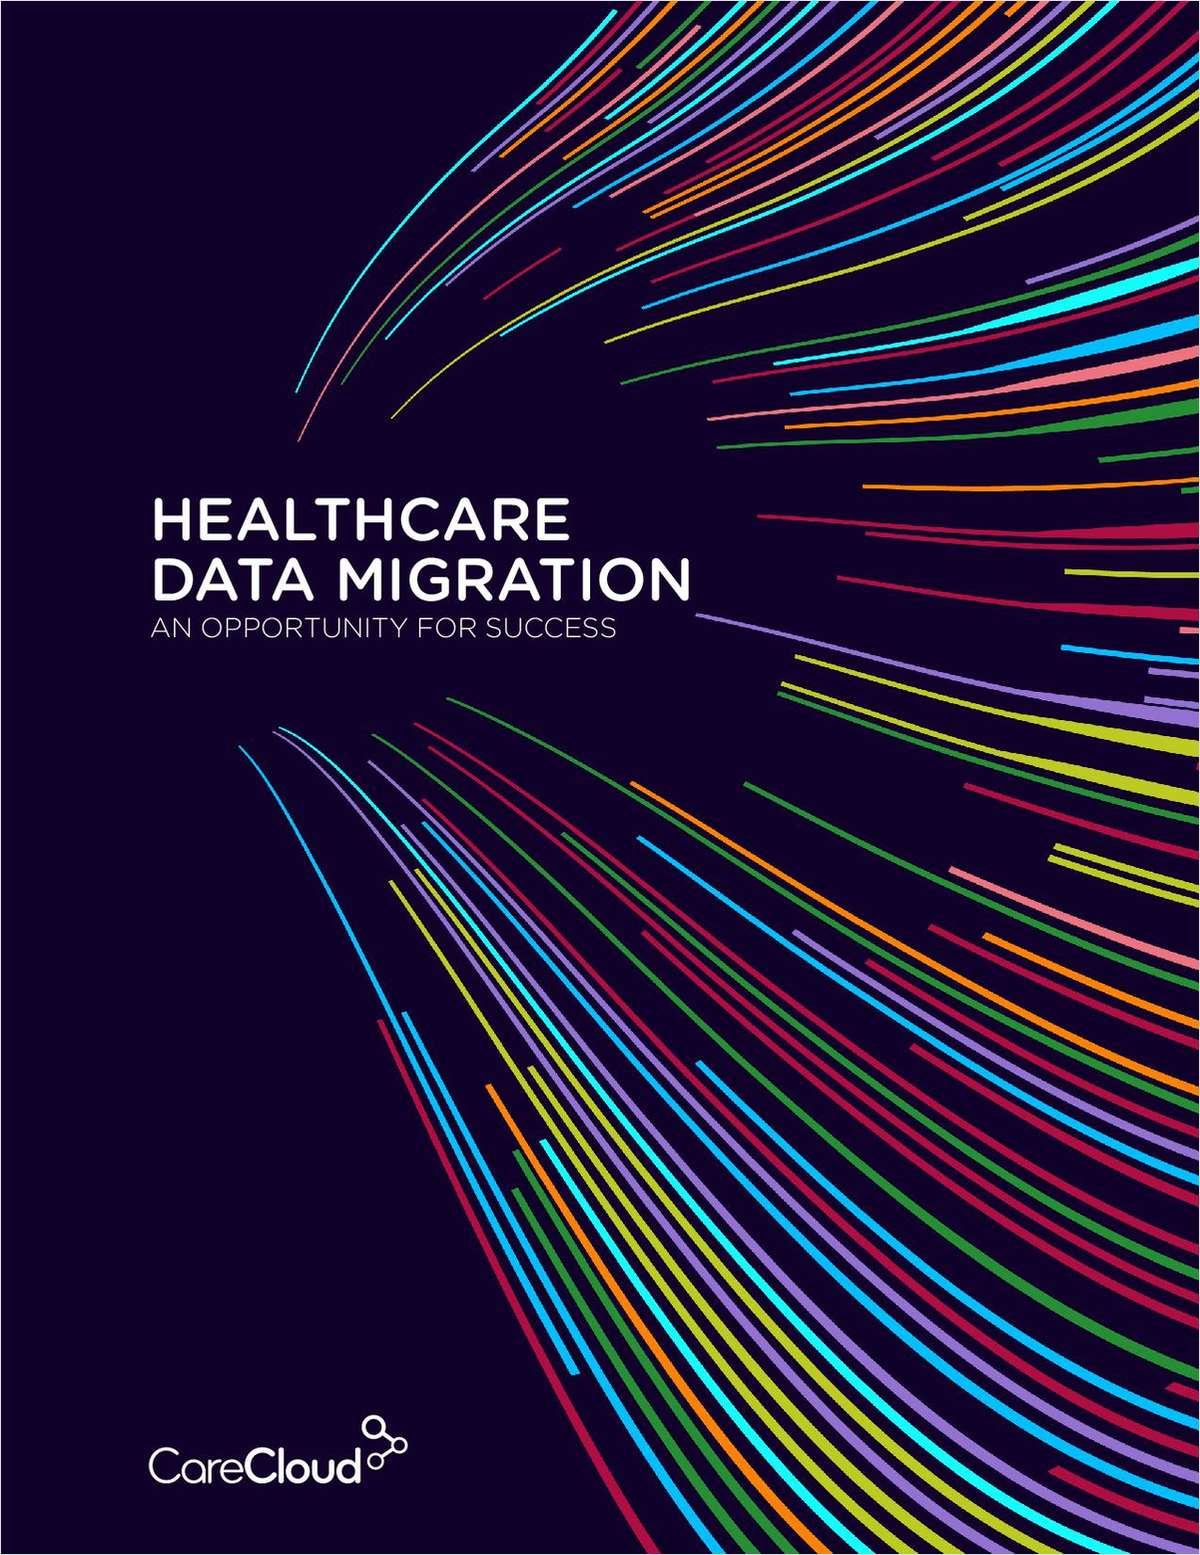 Healthcare Data Migration: An Opportunity for Success